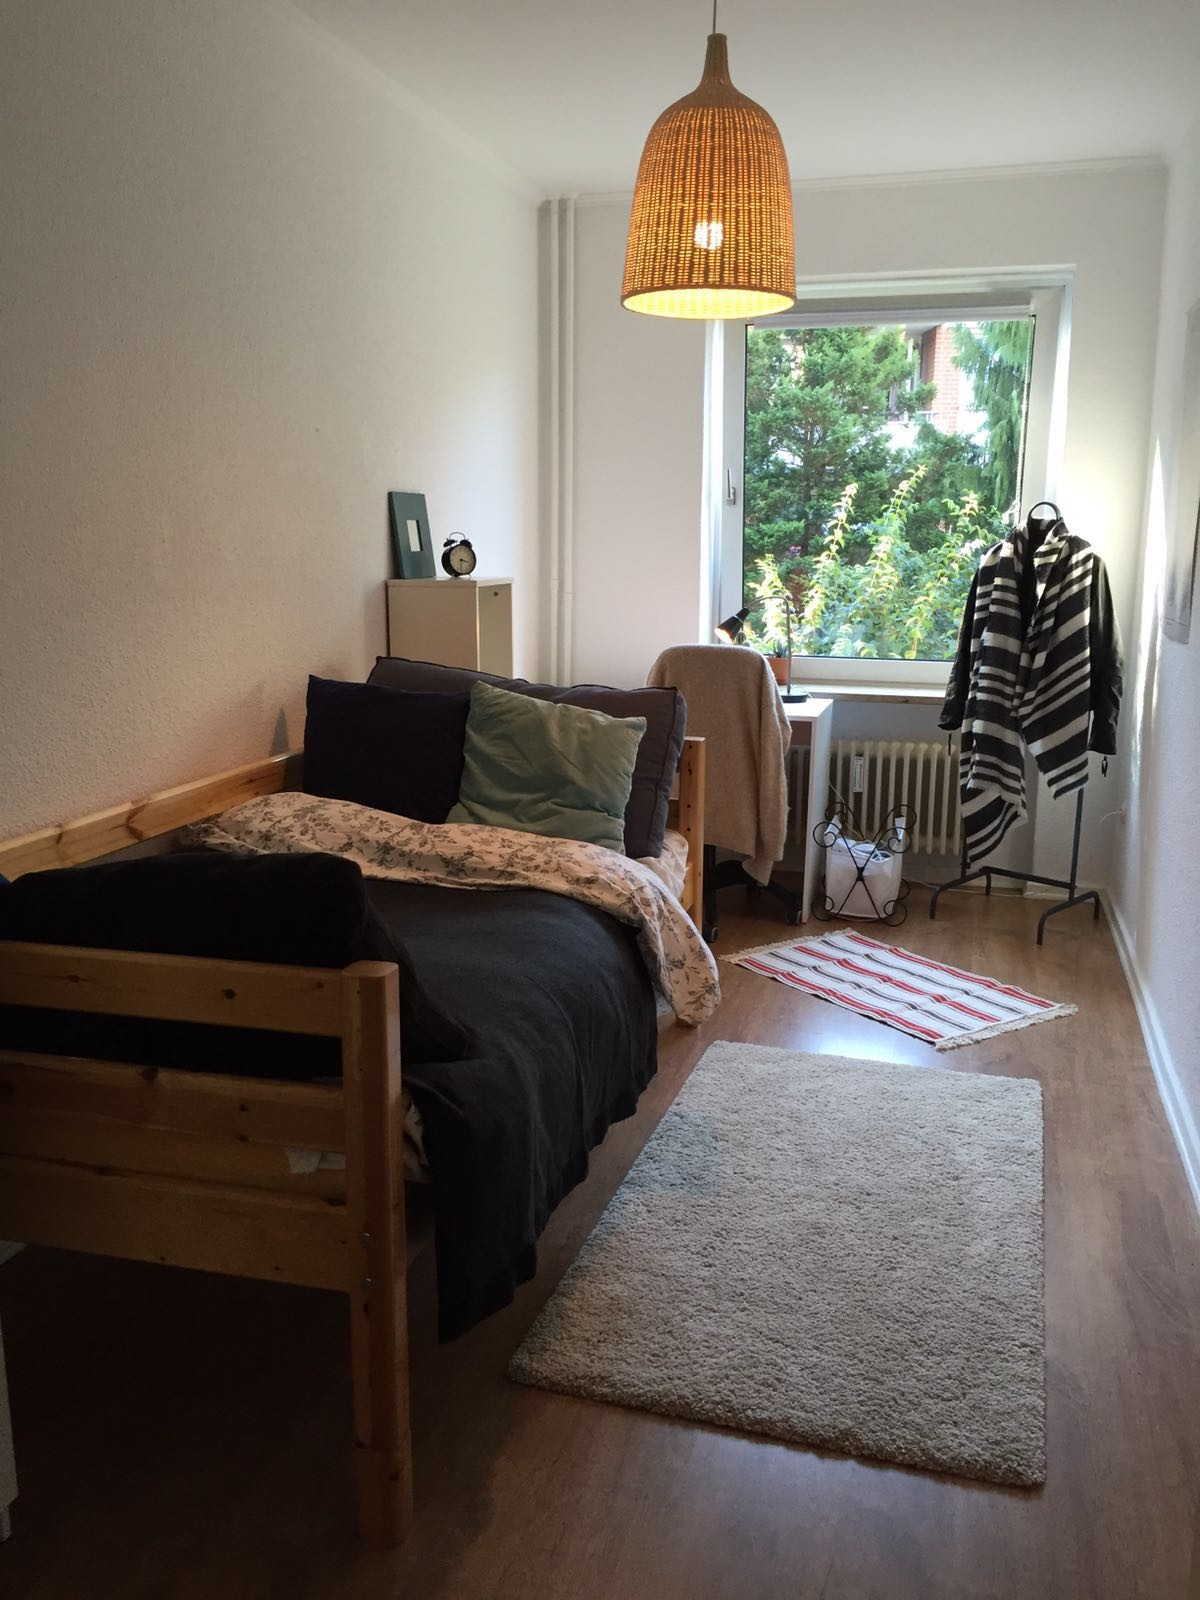 12m2 Furnished Room In Shared Apartment With 2 Students